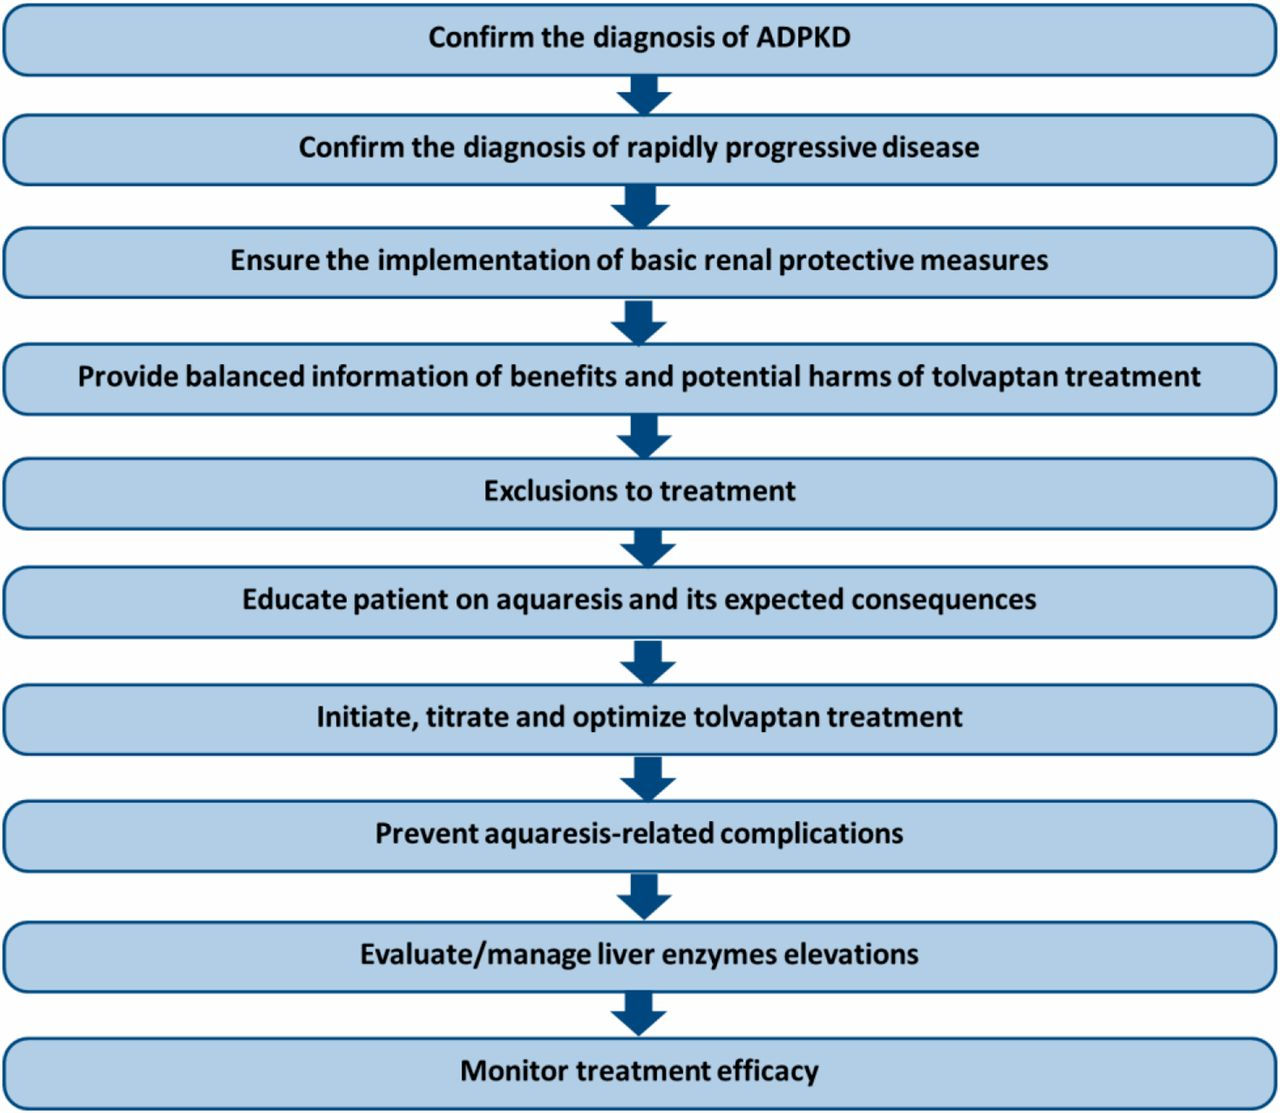 A Practical Guide for Treatment of Rapidly Progressive ADPKD